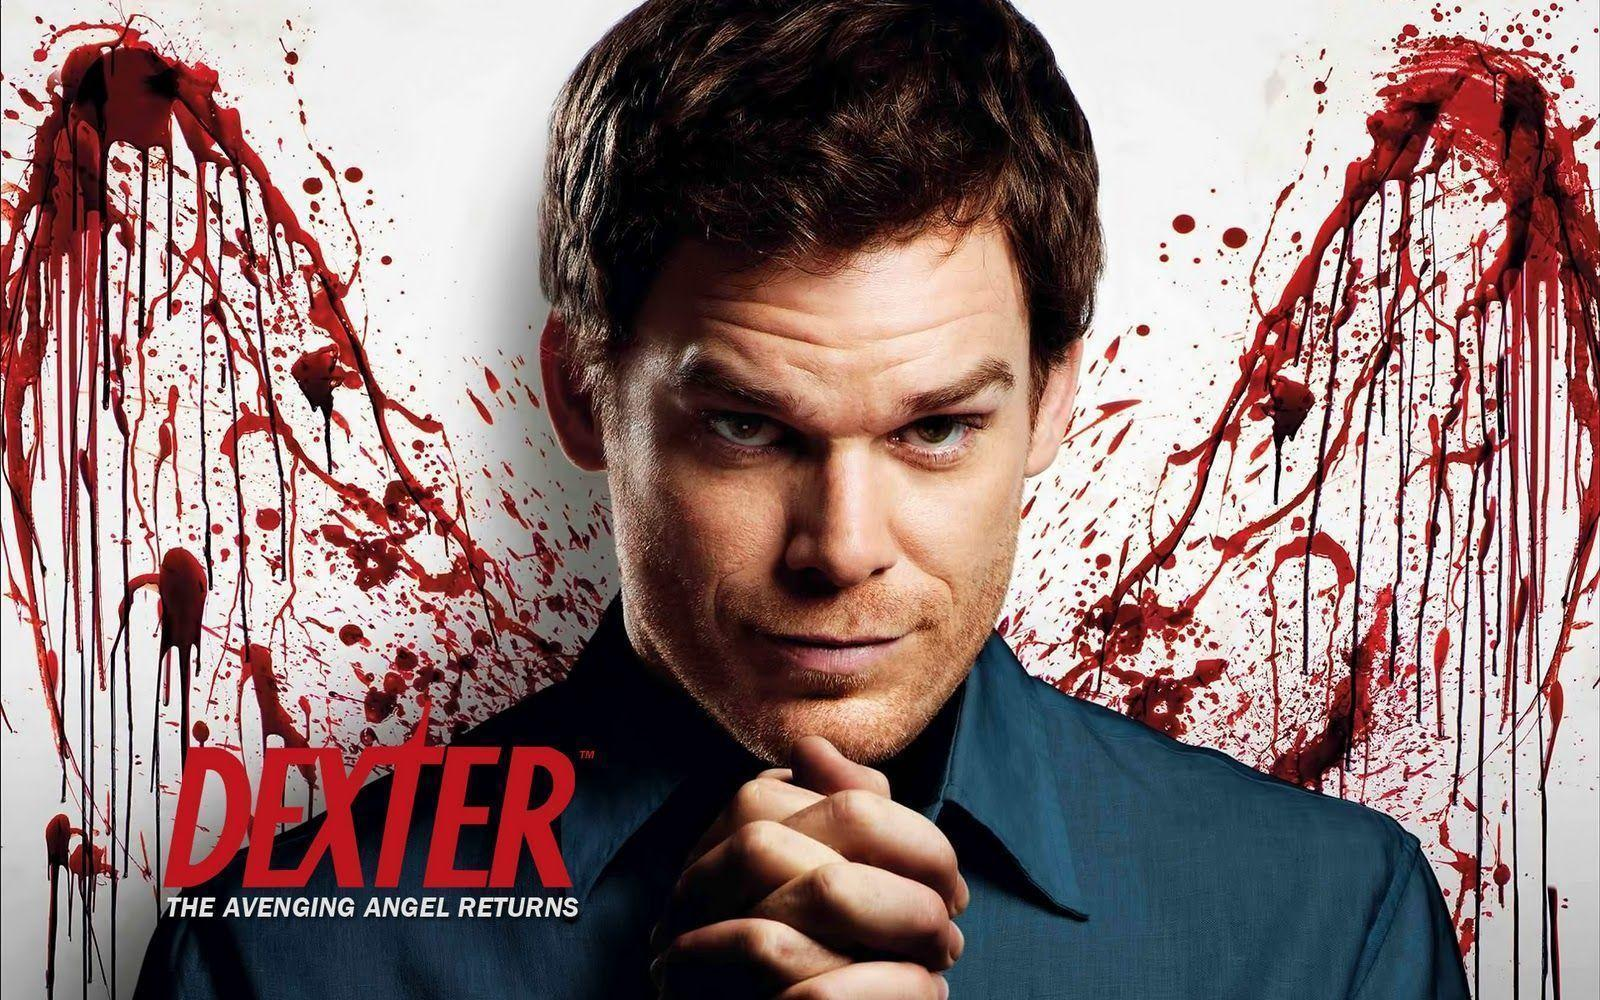 Dexter Hd Wallpaper - Viewing Gallery